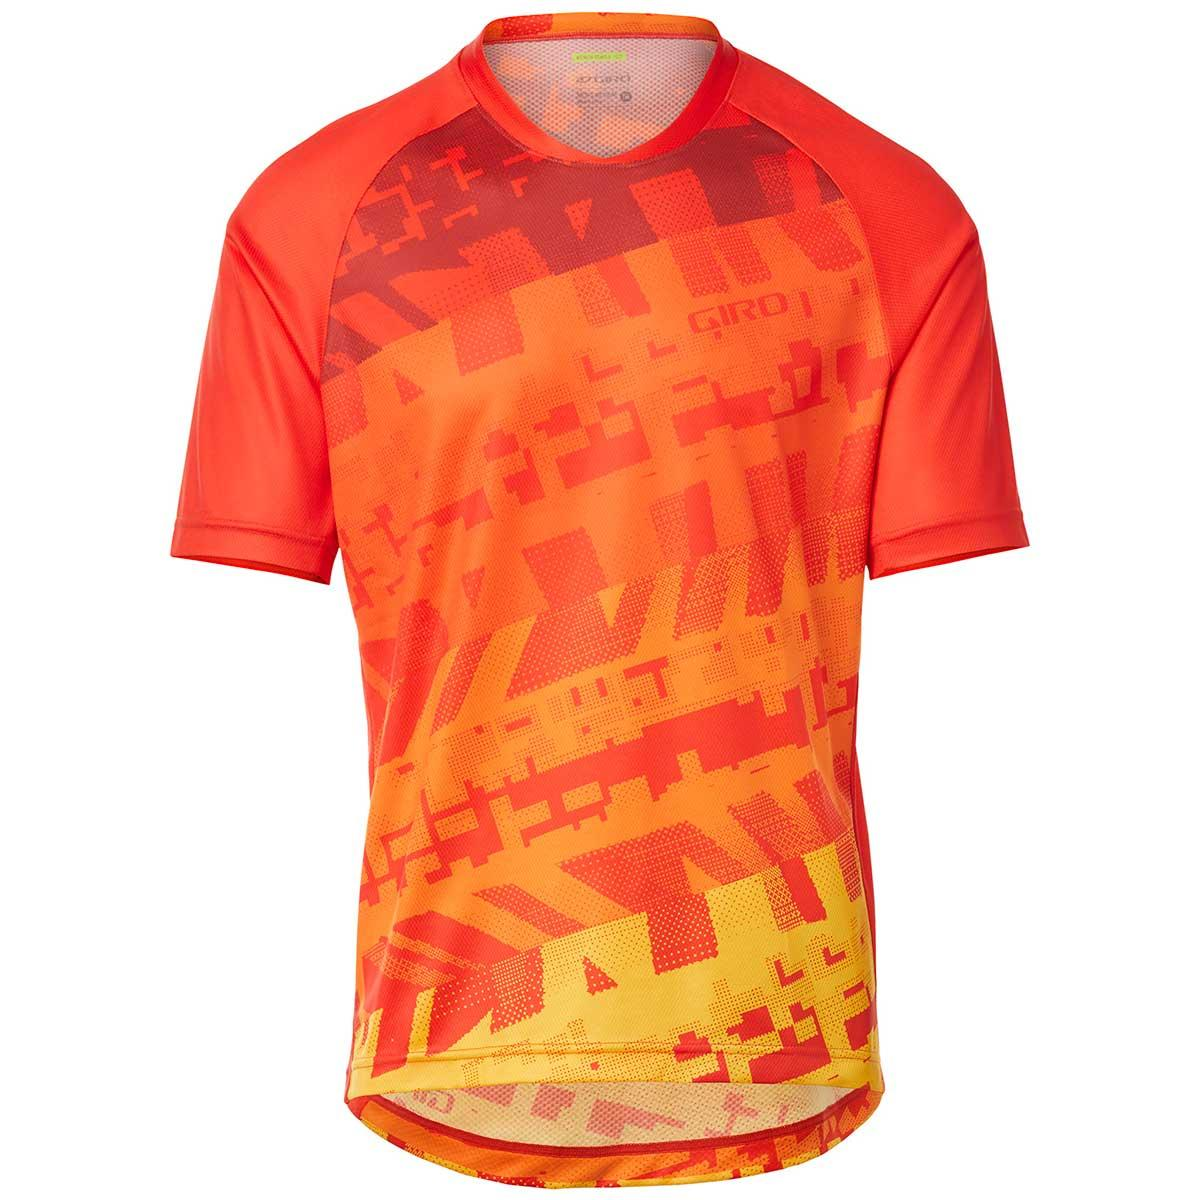 Giro men's Roust Jersey in Red Orange Fantastic front view